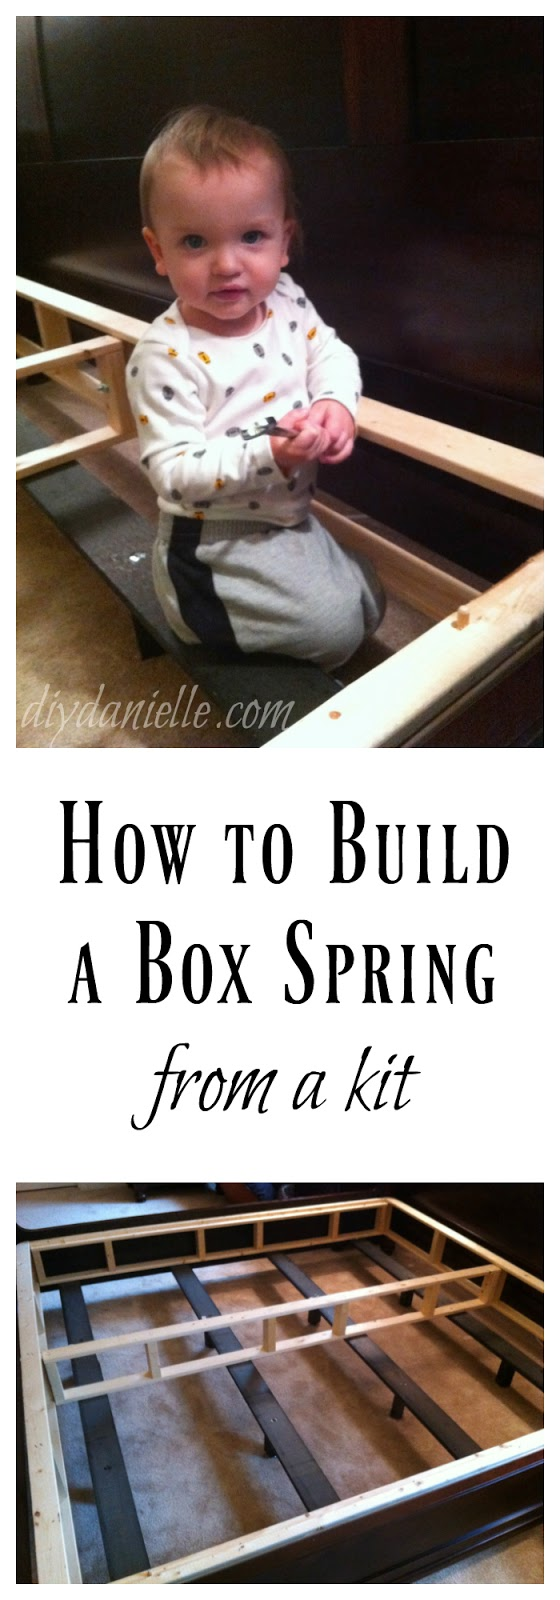 Simple Box Spring Kit Setup Instructions